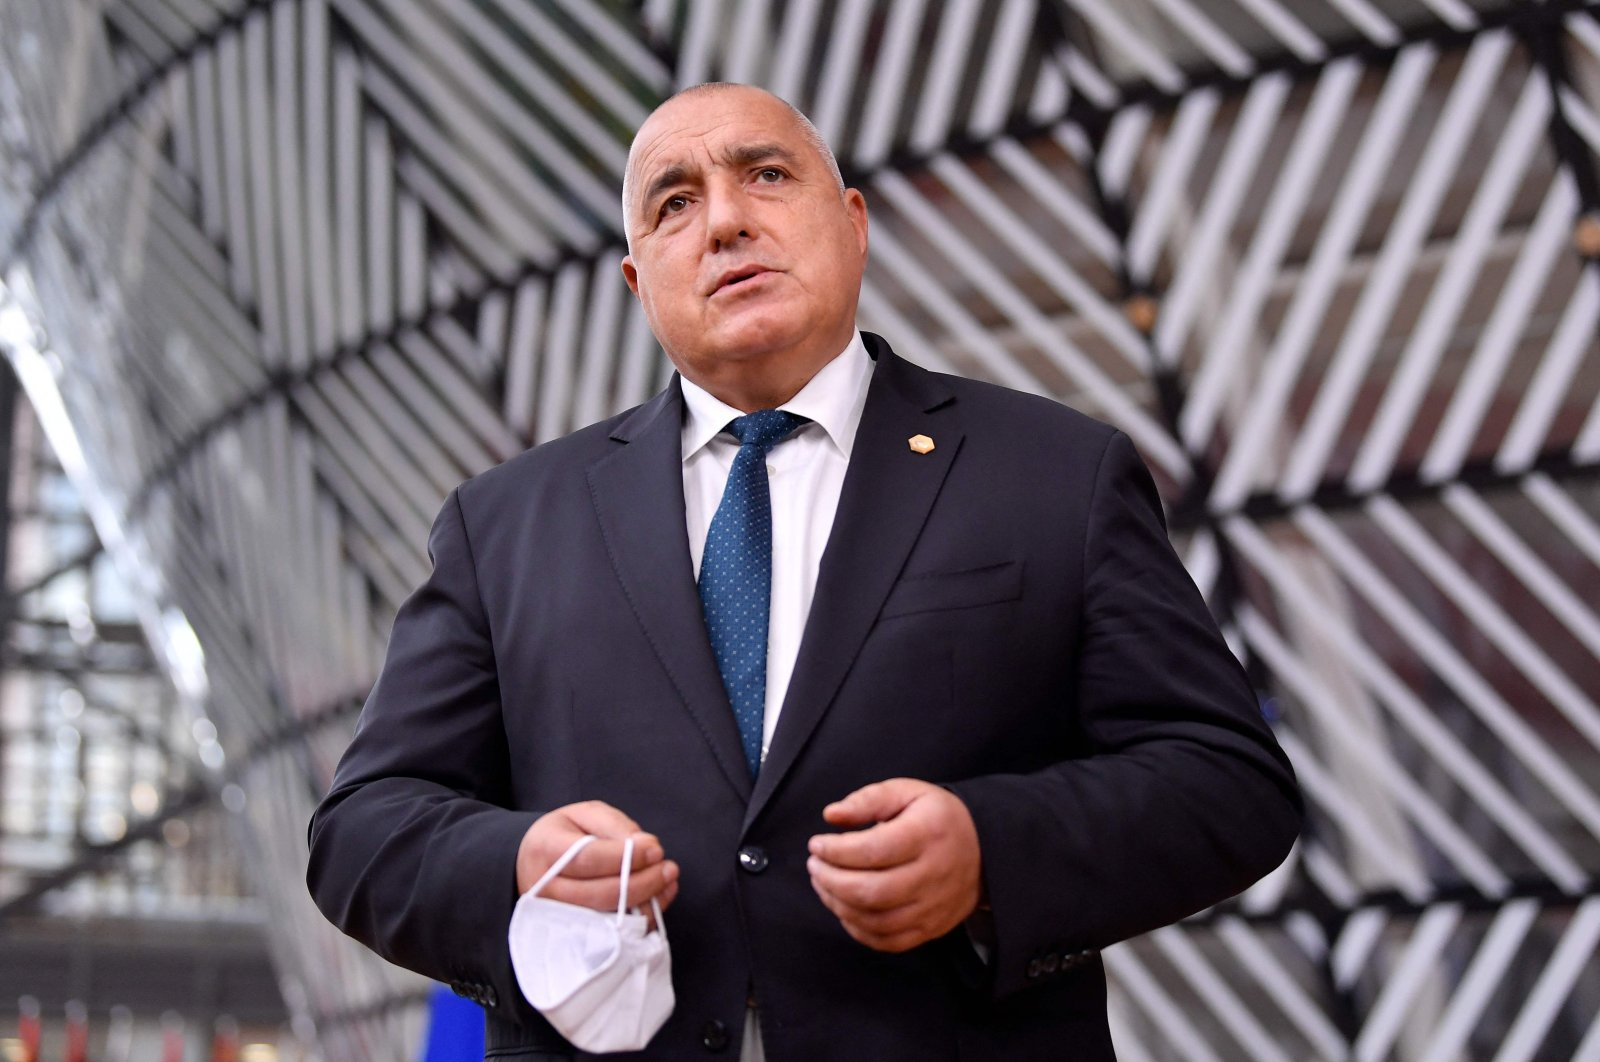 Bulgaria's Prime Minister Boyko Borisov addresses journalists as he arrives at the European Union headquarters' Europa building prior to an EU summit in Brussels, Belgium, Dec. 10, 2020. (AFP Photo)